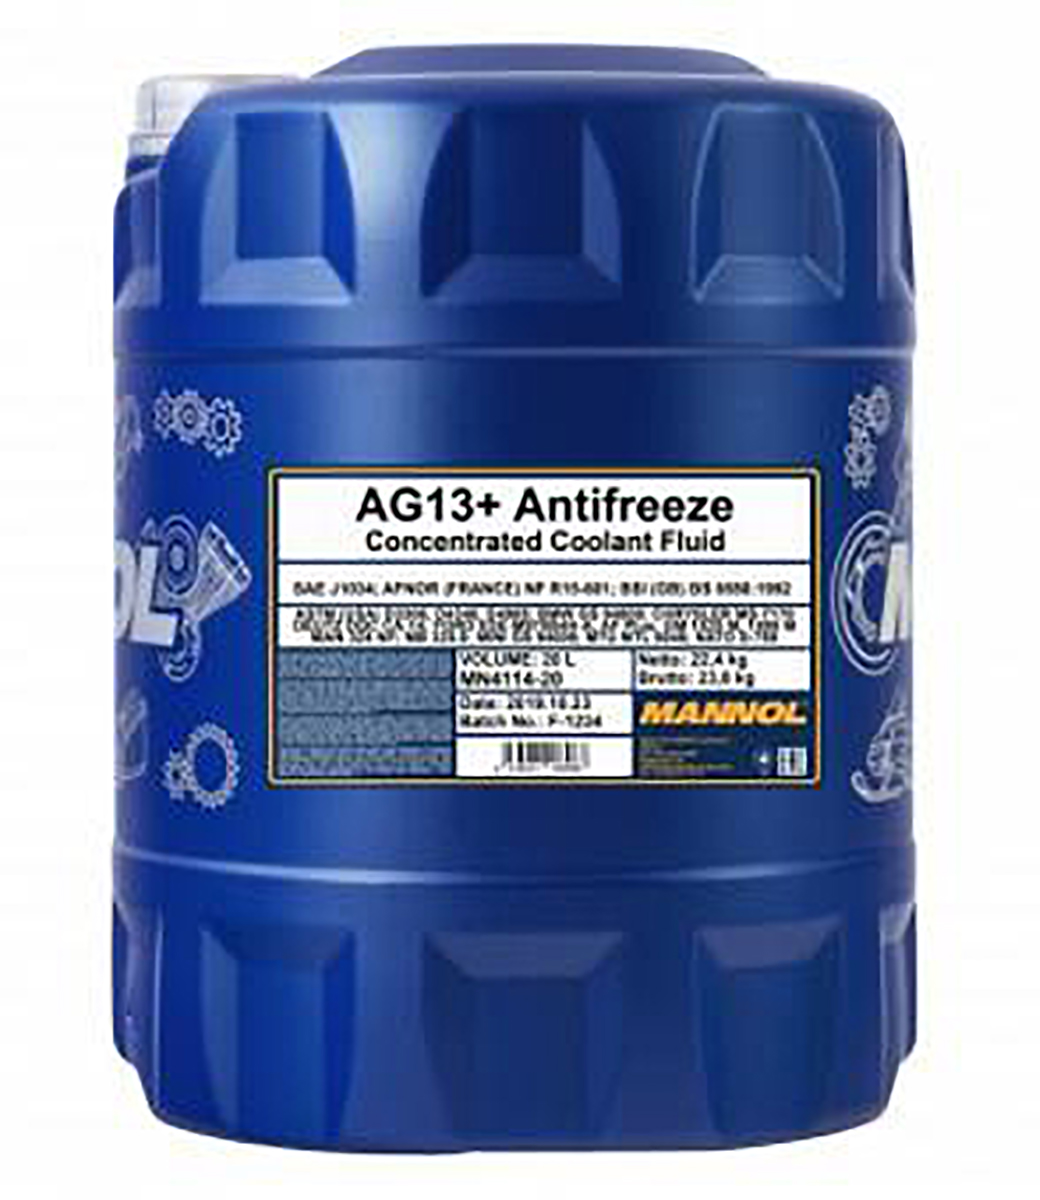 Antifreeze AG13+ Advanced